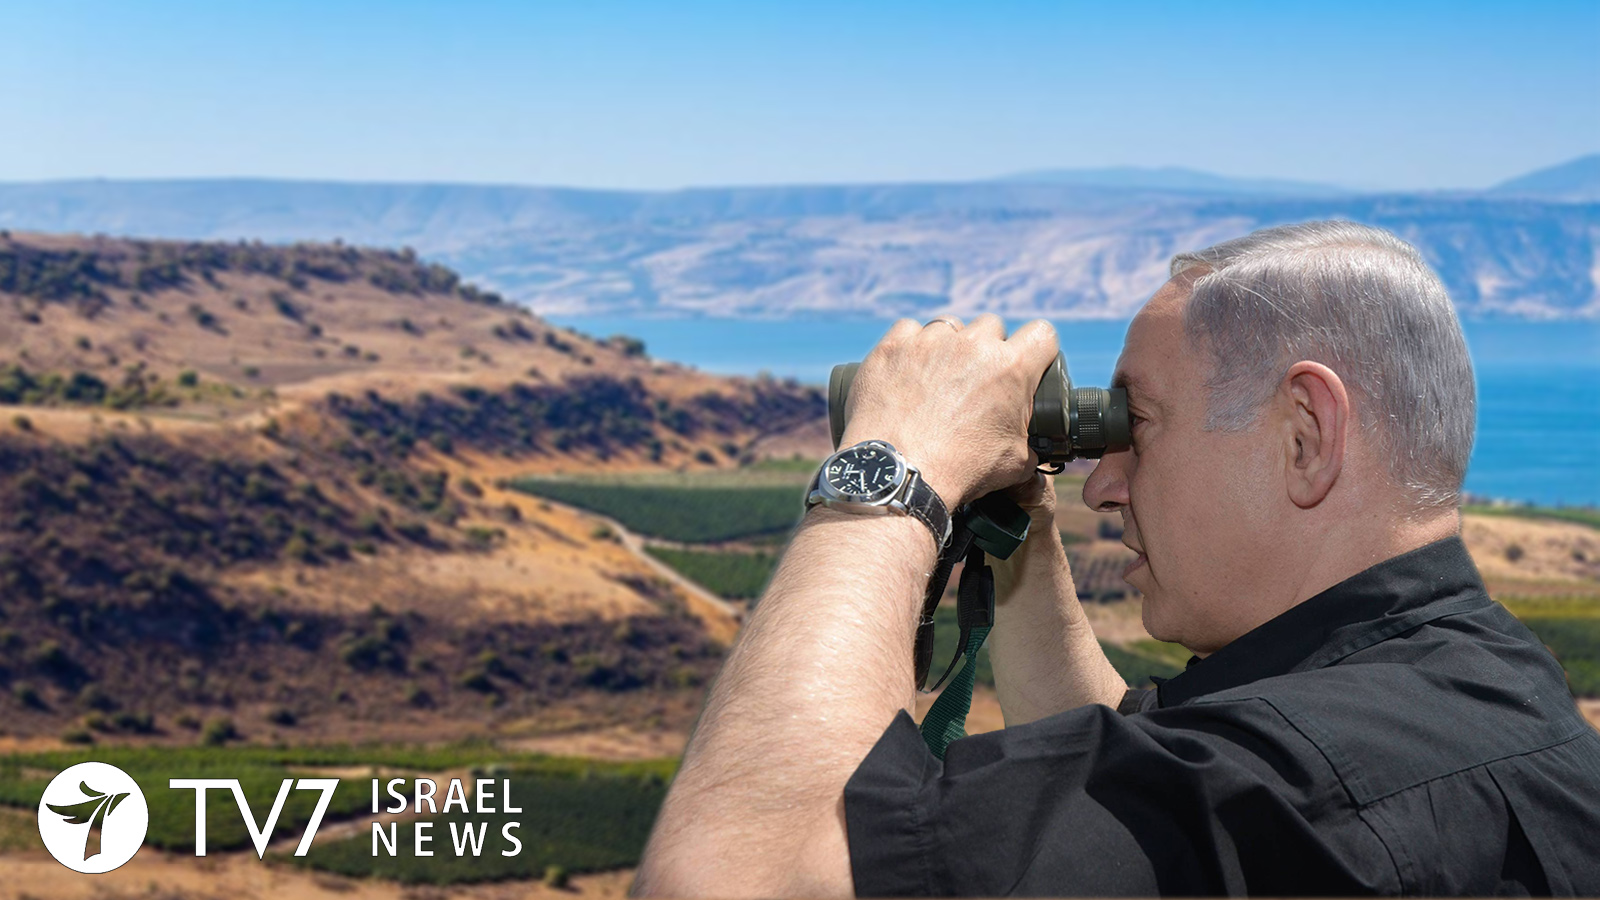 Netanyahu watches over the Golan Heights